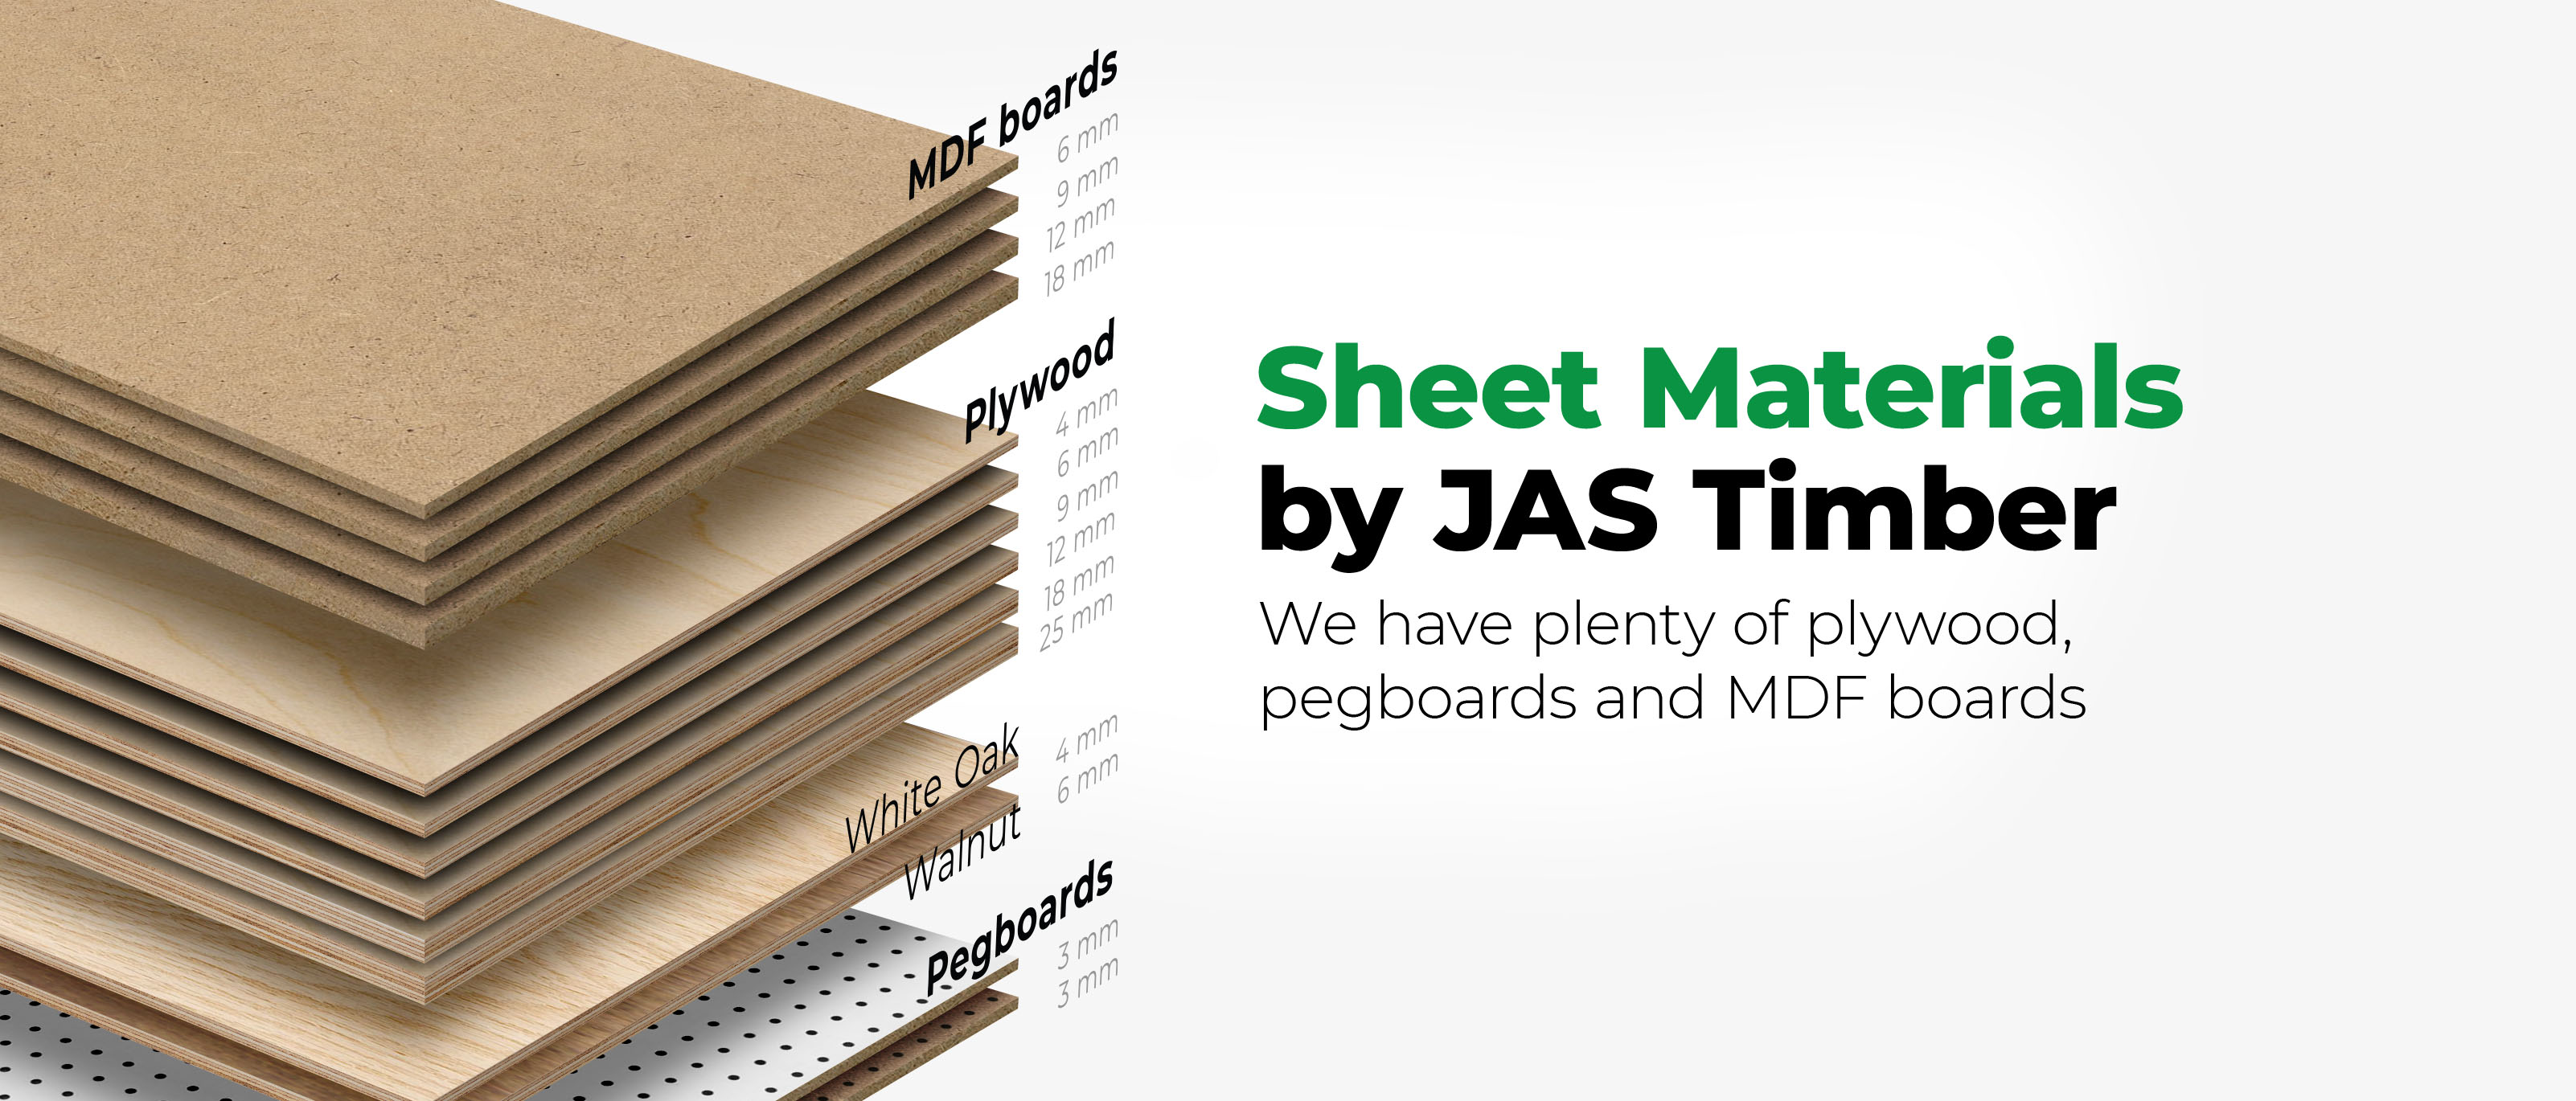 Sheet Materials by JAS Timber